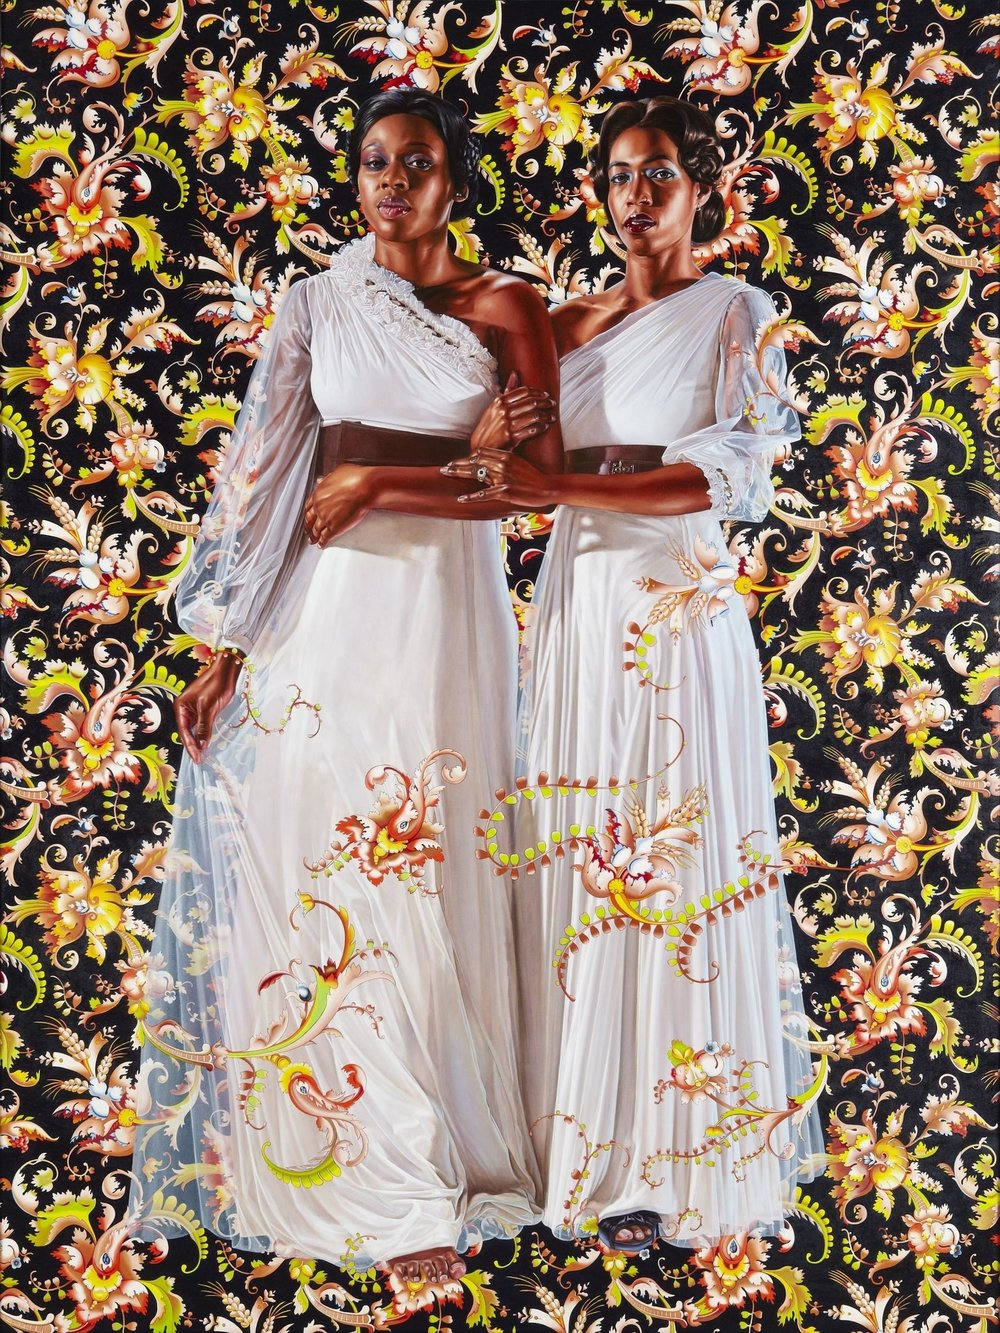 Kehinde Wiley, The Two Sisters, 2012. Oil on linen. Collection of Pamela K. and William A. Royall, Jr. Courtesy of Sean Kelly, New York. ©Kehinde Wiley. (Photo: Jason Wyche, courtesy of Sean Kelly, New York)